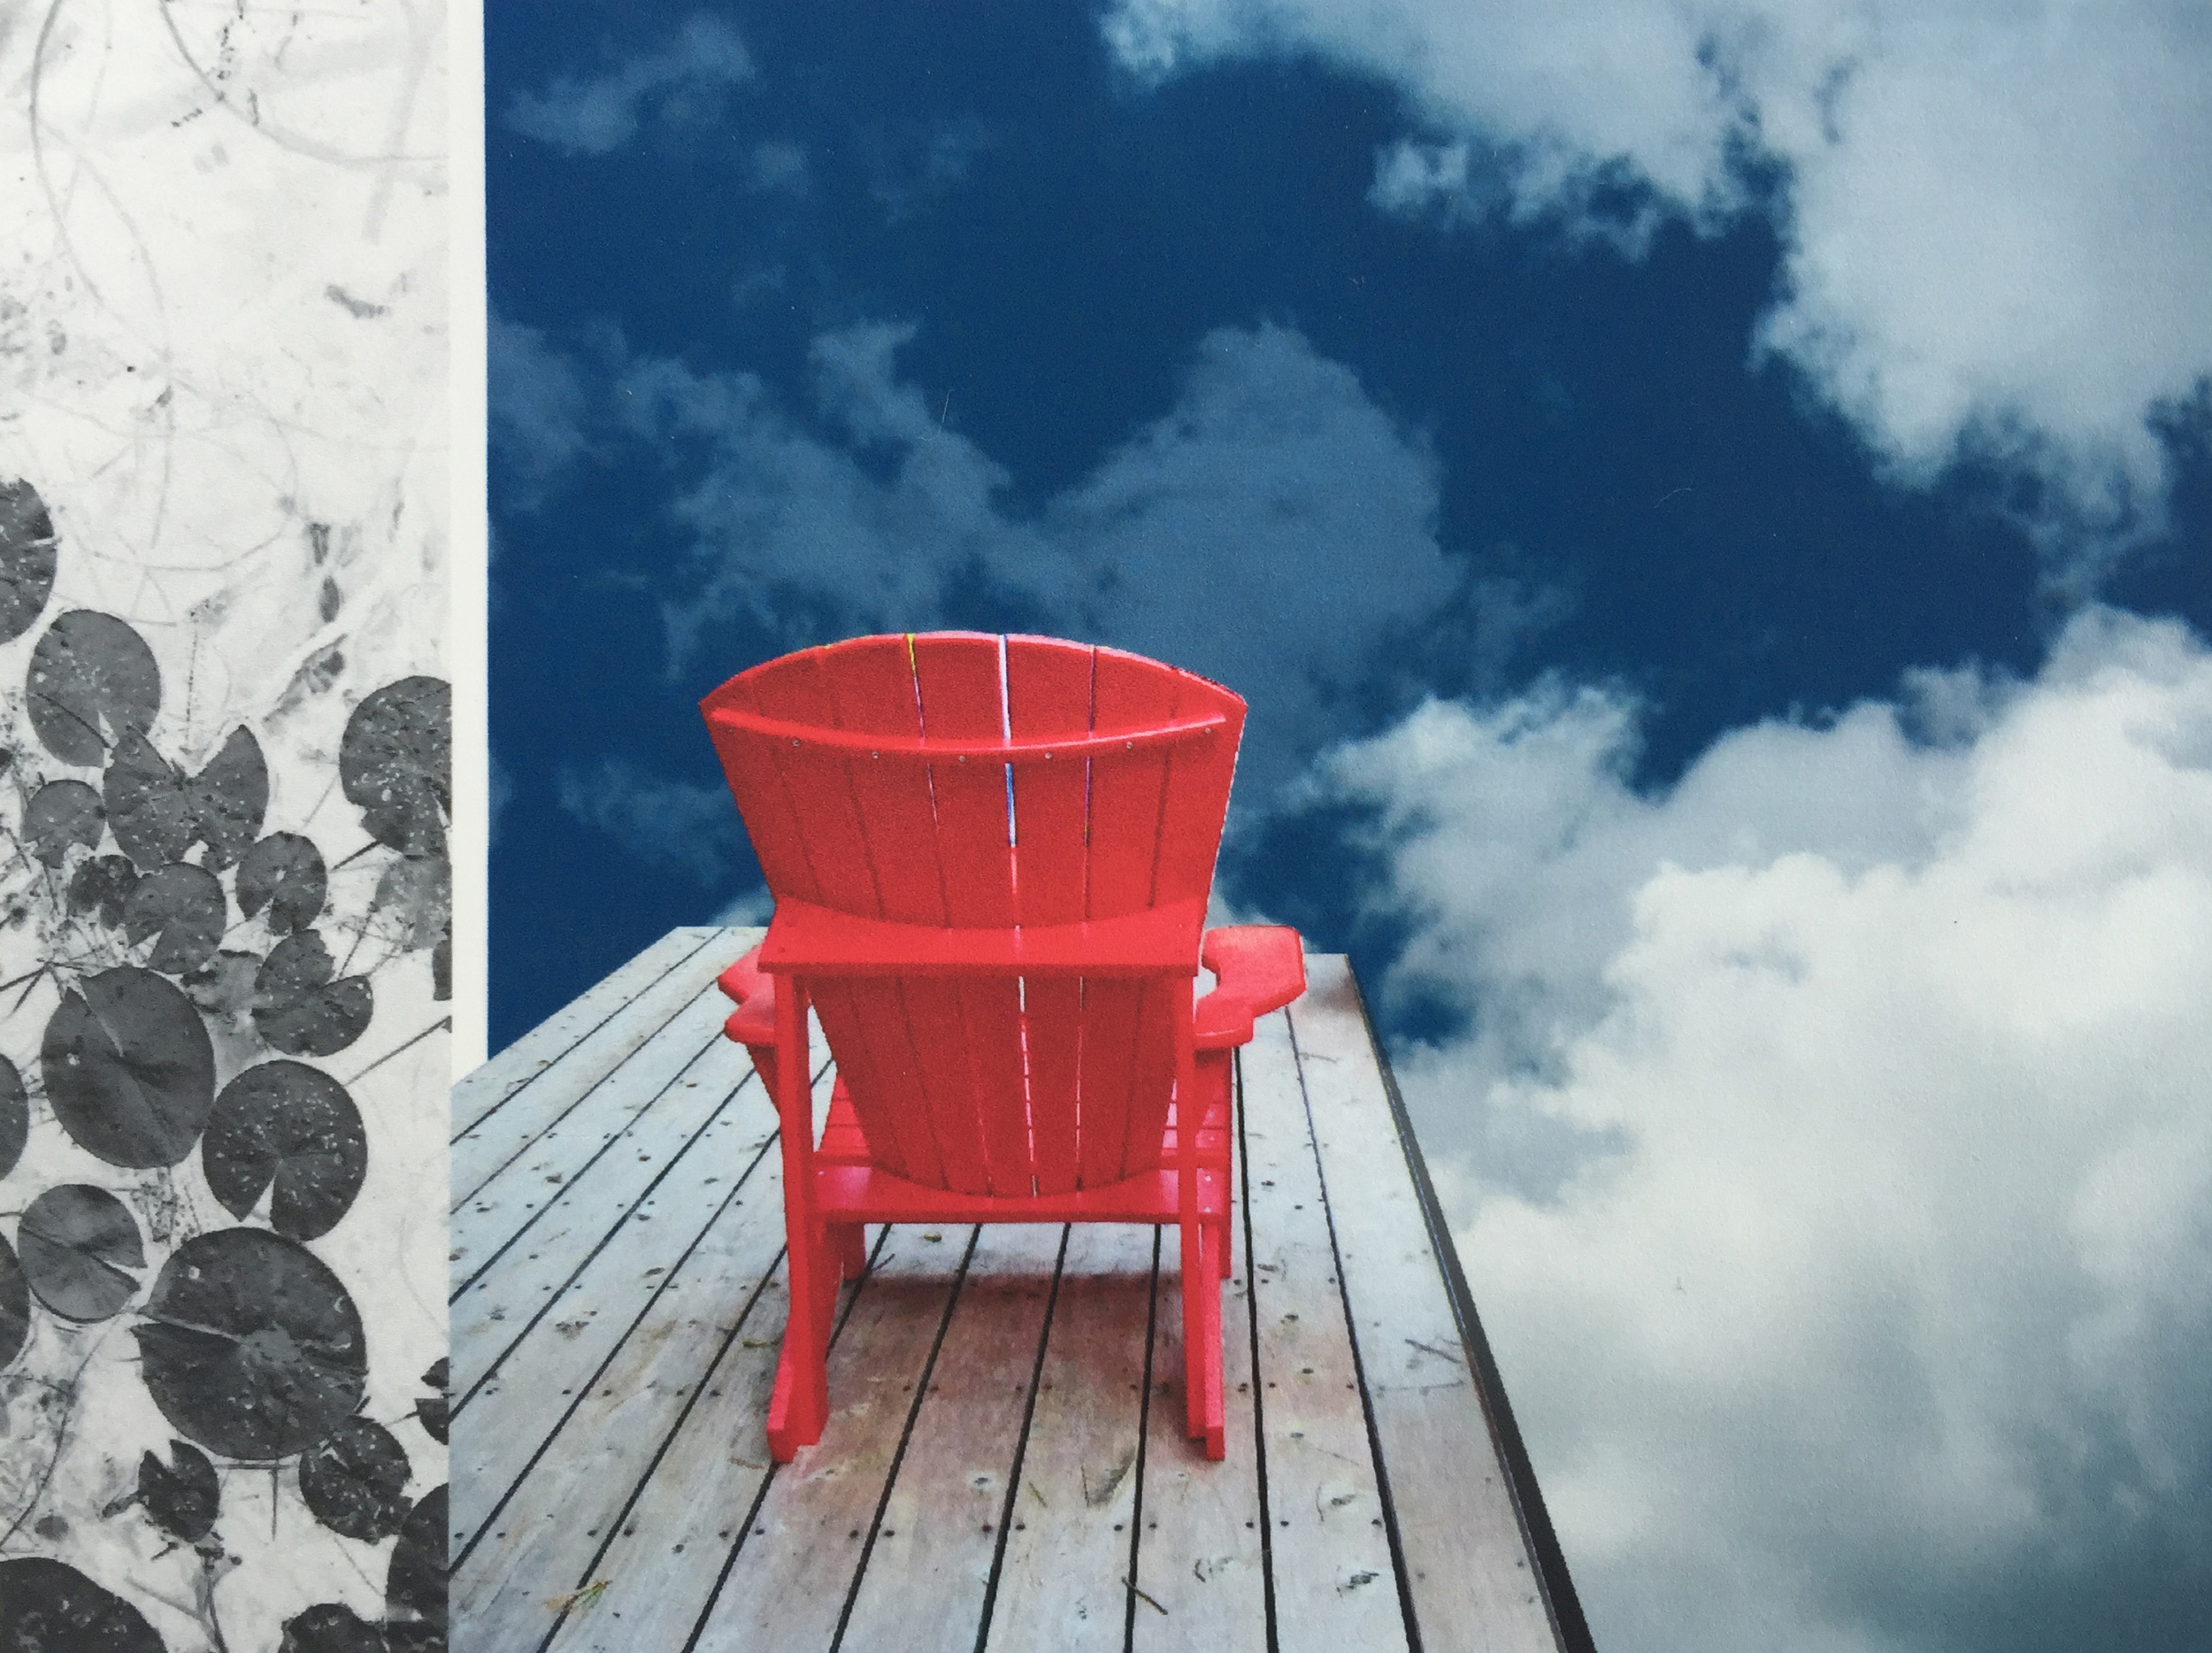 20160330-red-deck-chair-collection-1-jpg.jpg